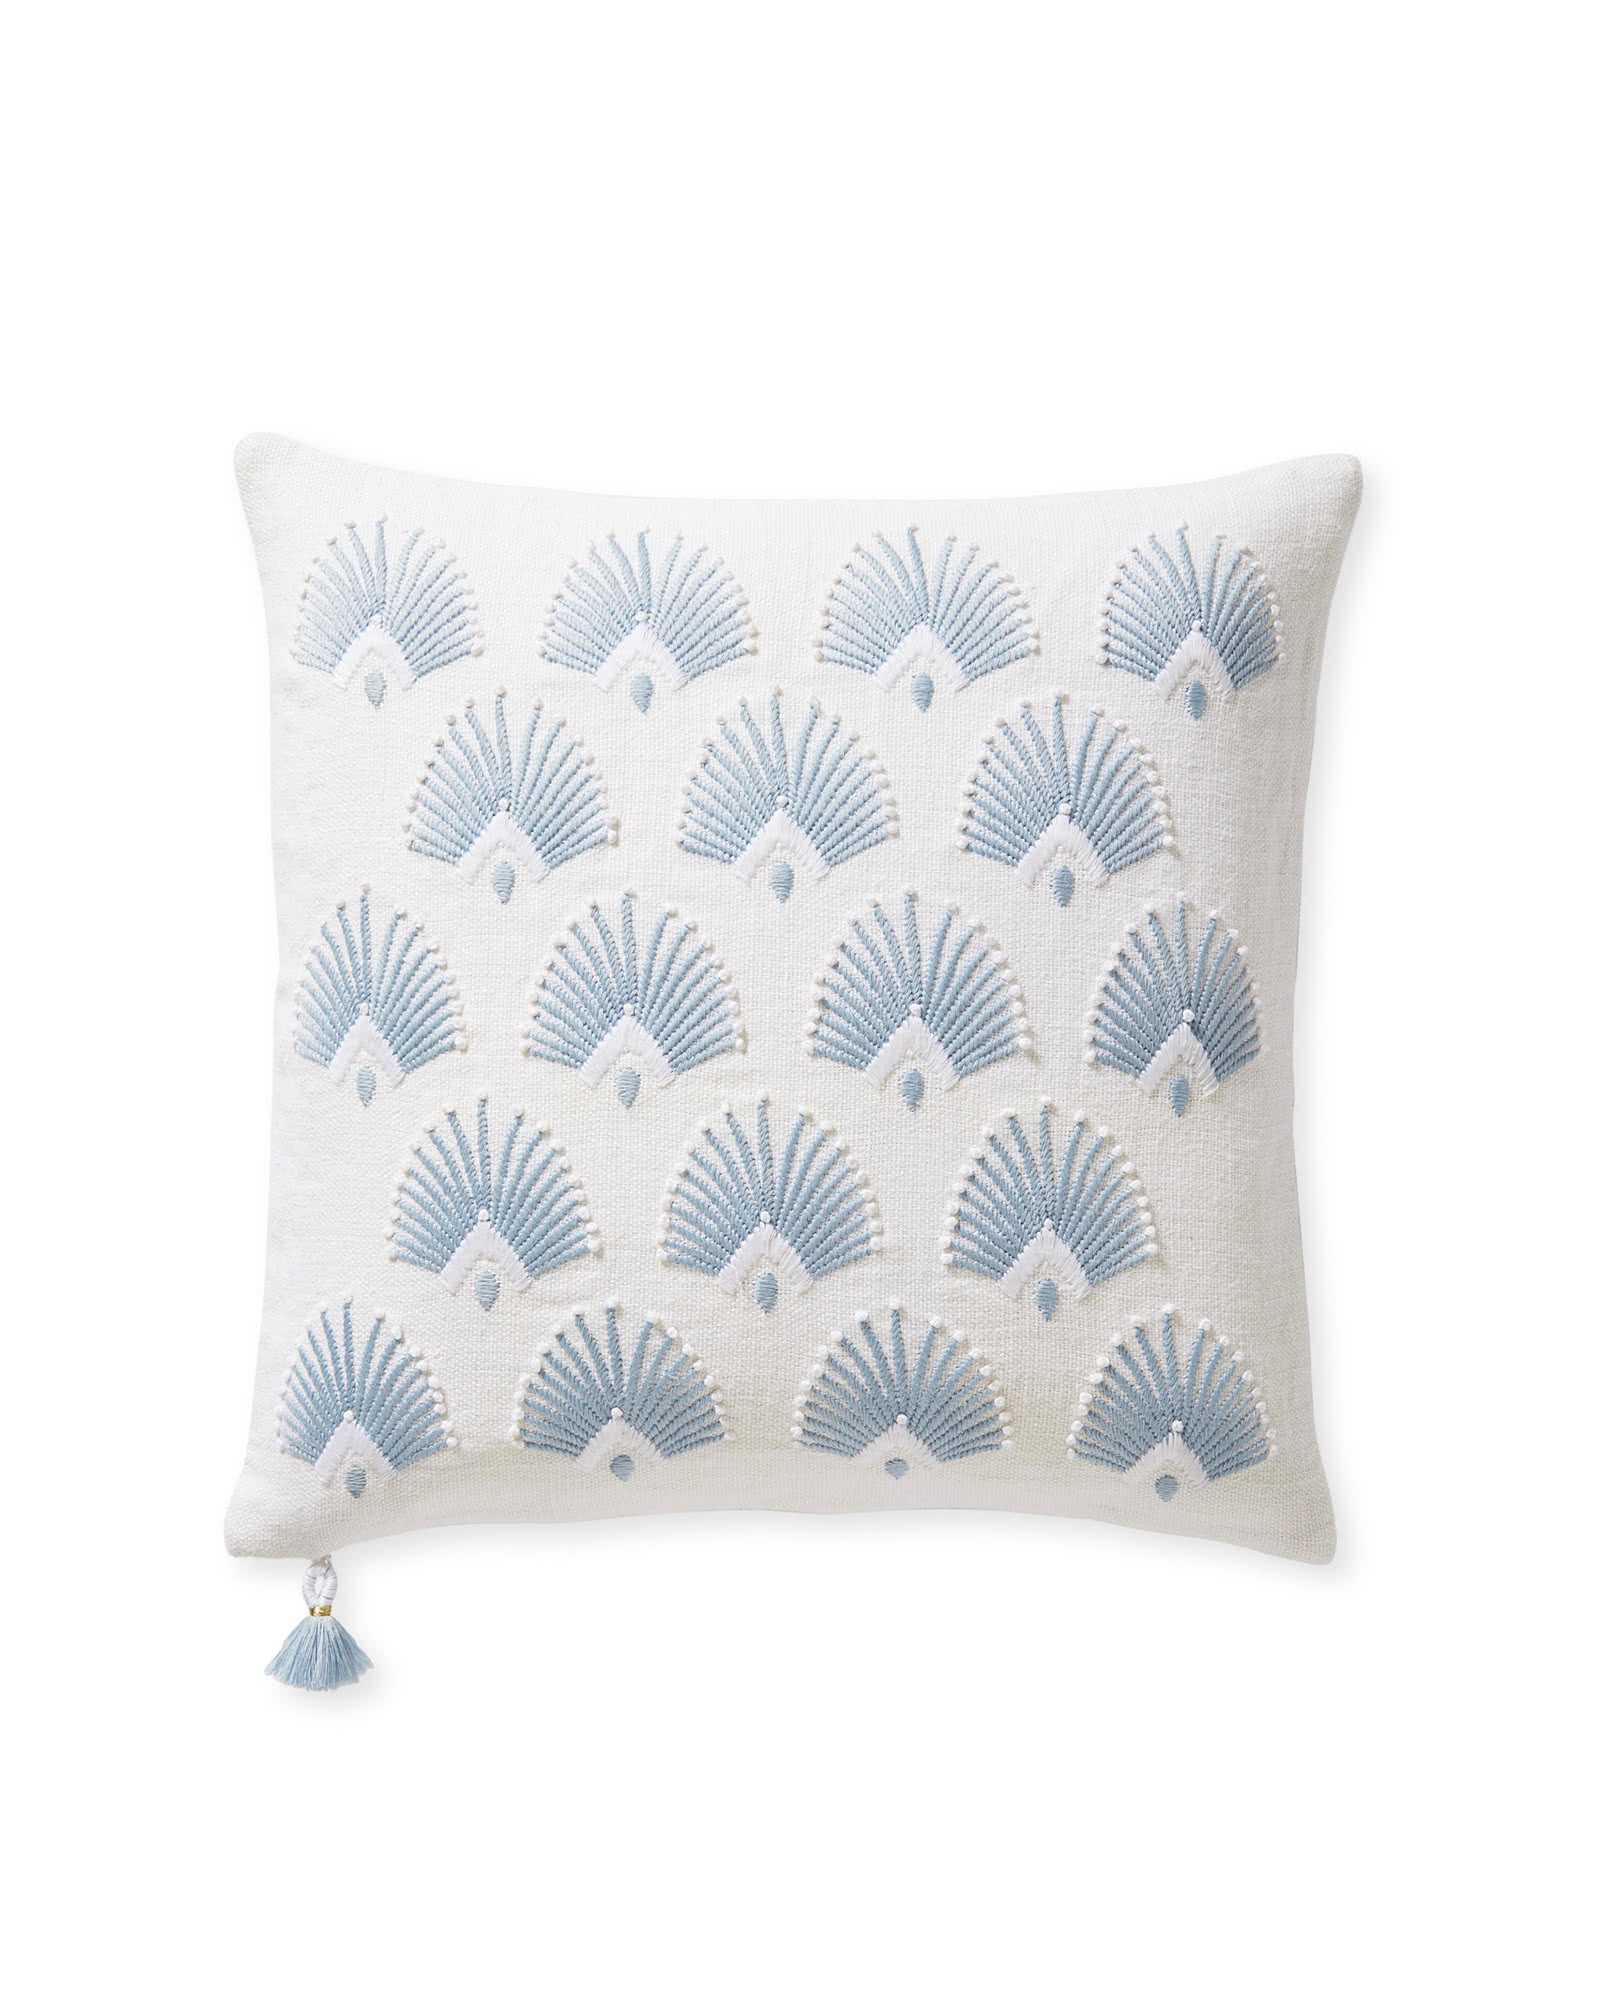 Monarch Pillow Cover,